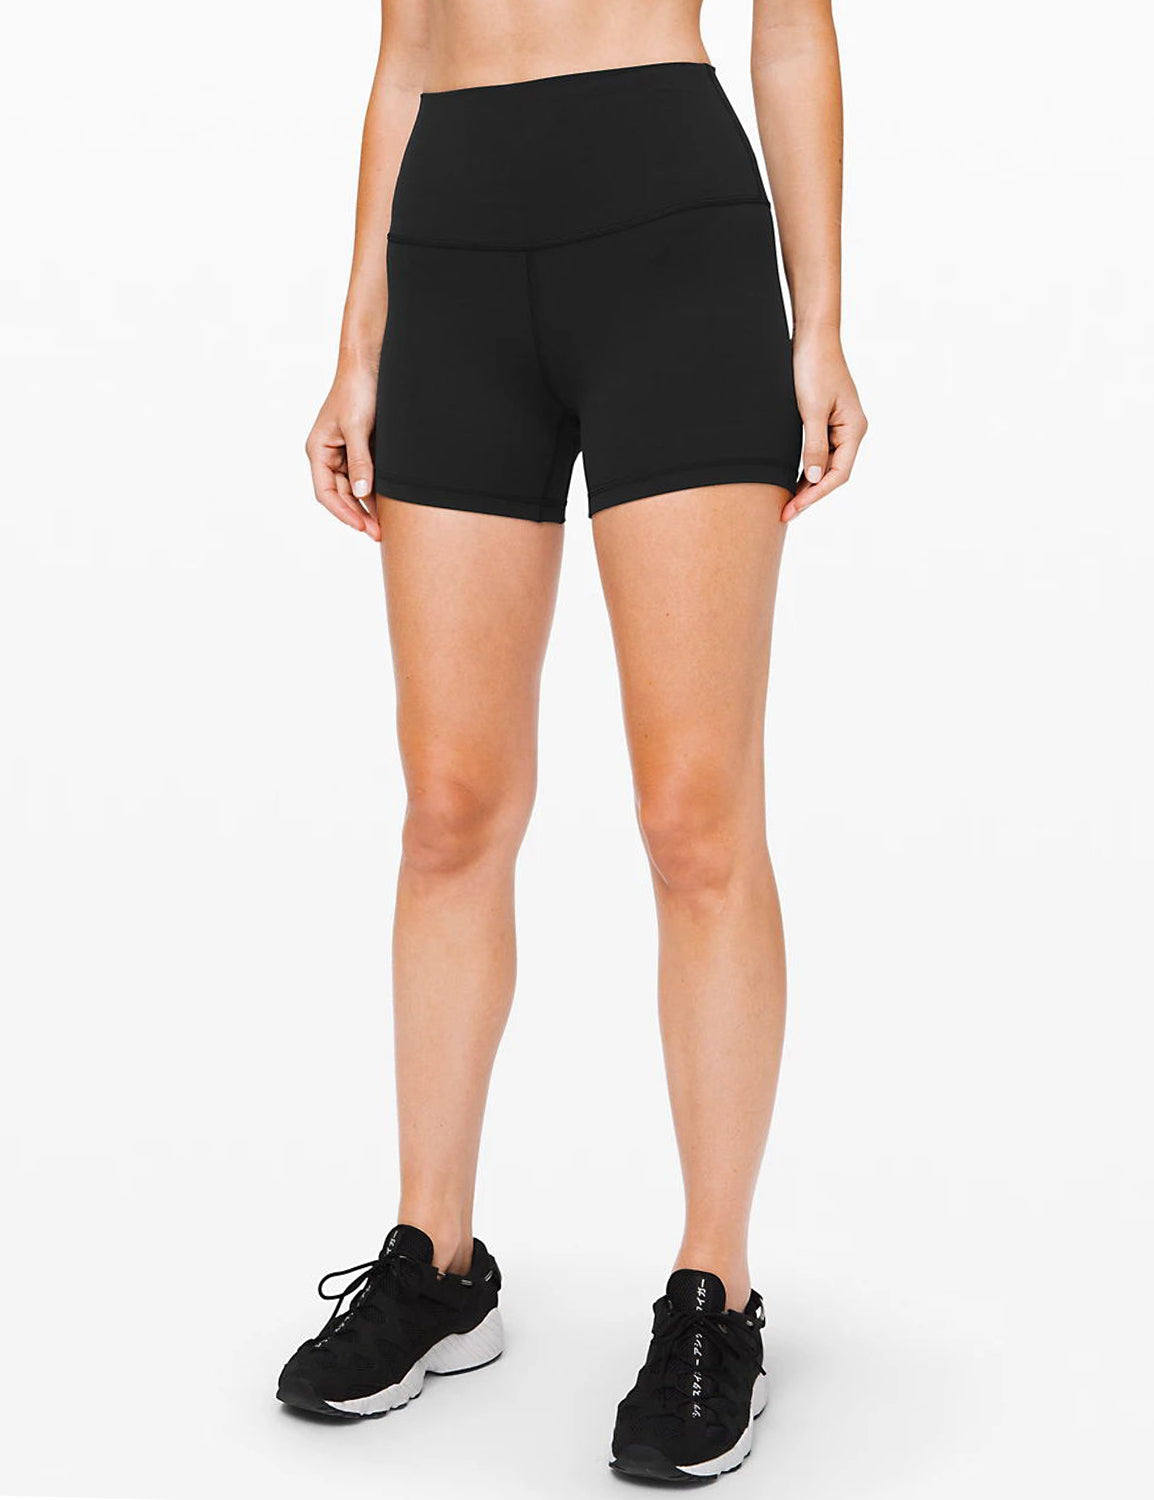 Blooming Jelly_Tummy Control High Waisted Biker Shorts_Black_253080_02_Women Athletic High Elascity Workout_Bottoms_Shorts